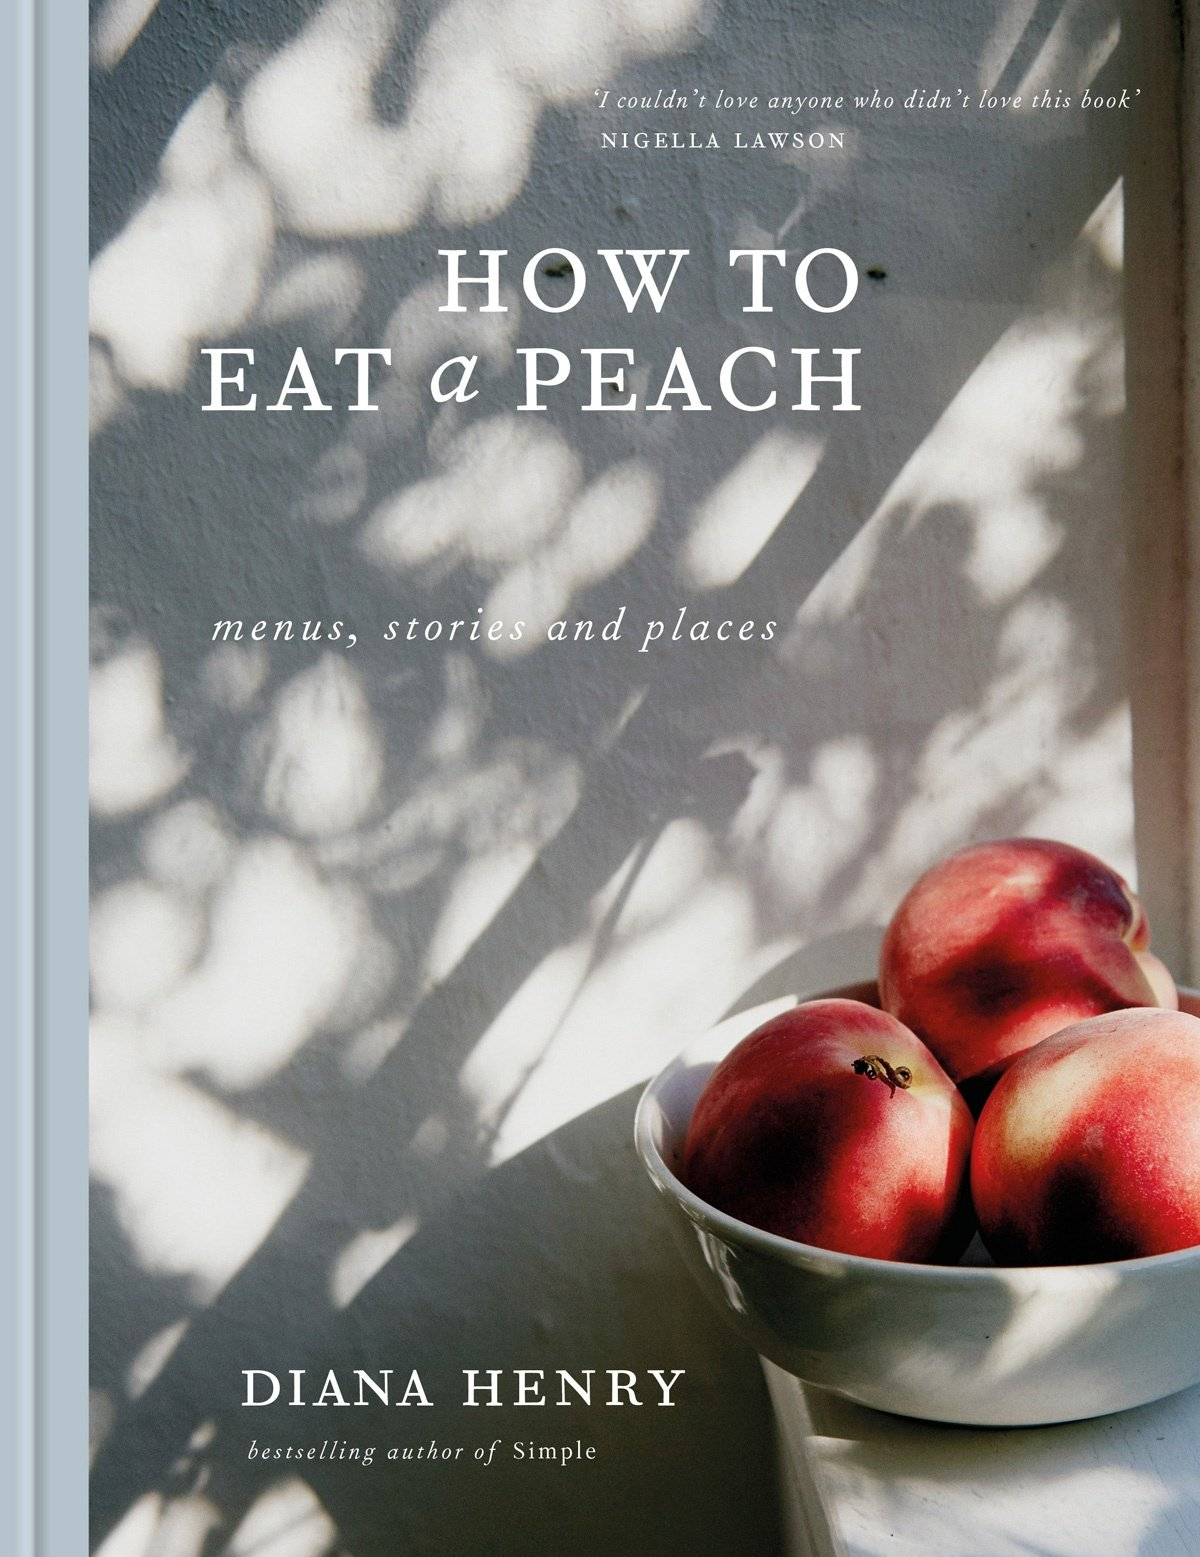 Book cover of How To Each A Peach by Diana Henry